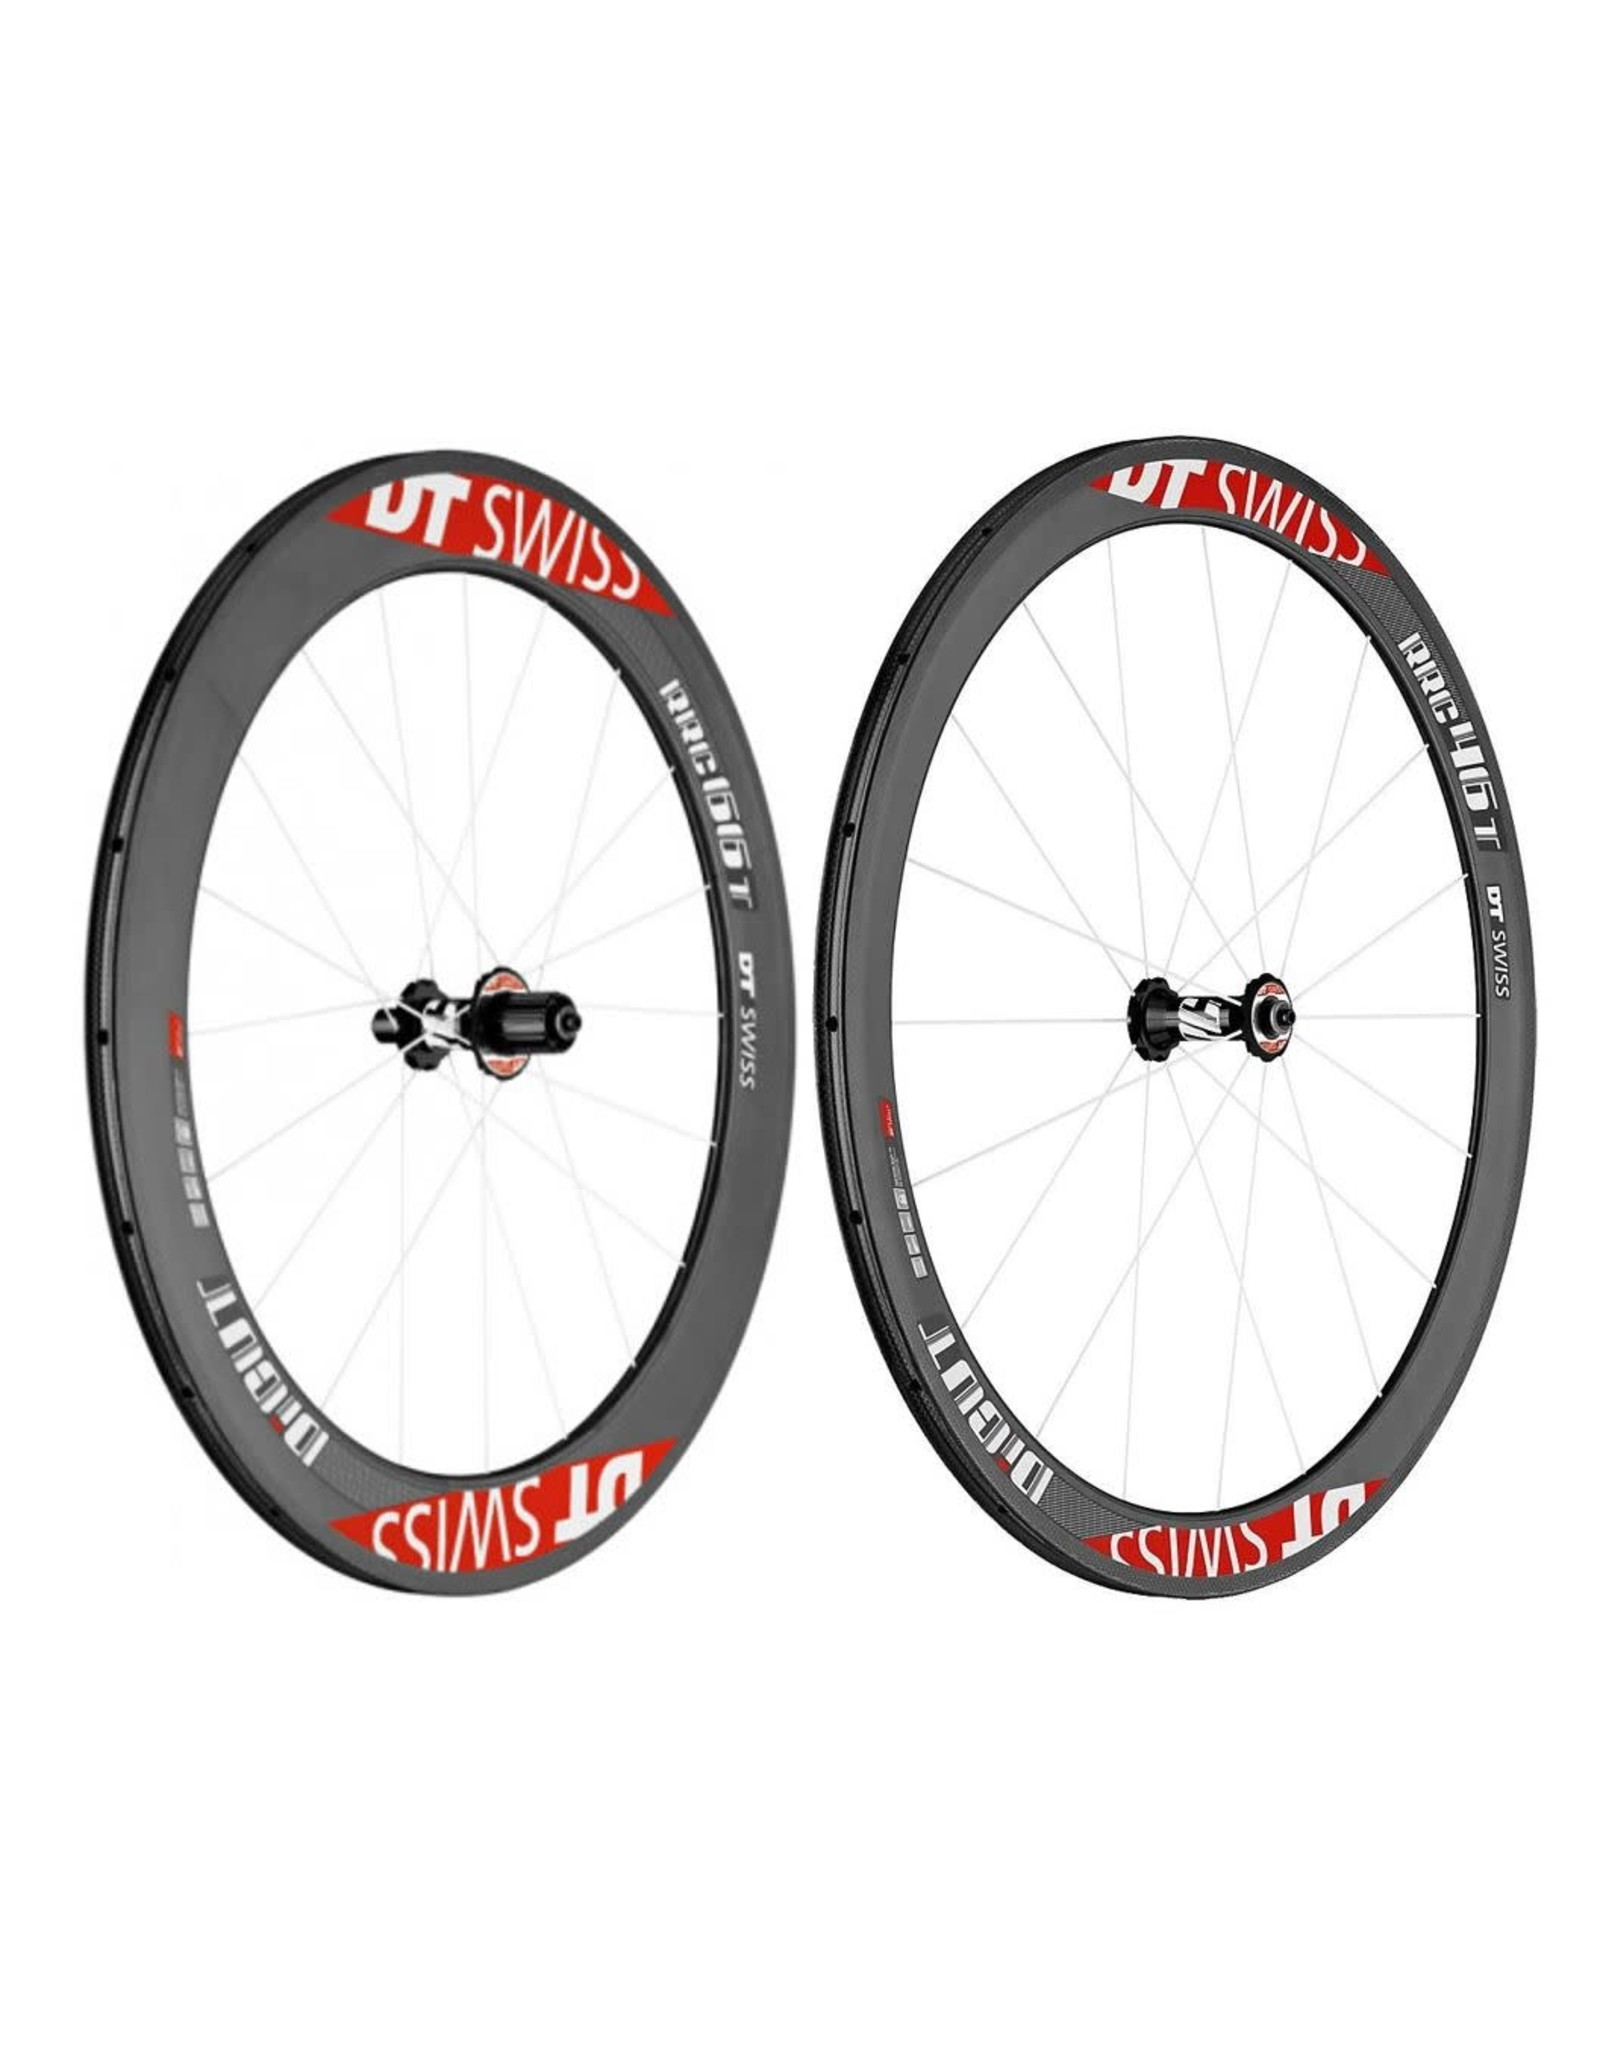 DT Swiss DT Swiss RRC Di-Cut 66/46 Tubular Wheelset (DEMO)